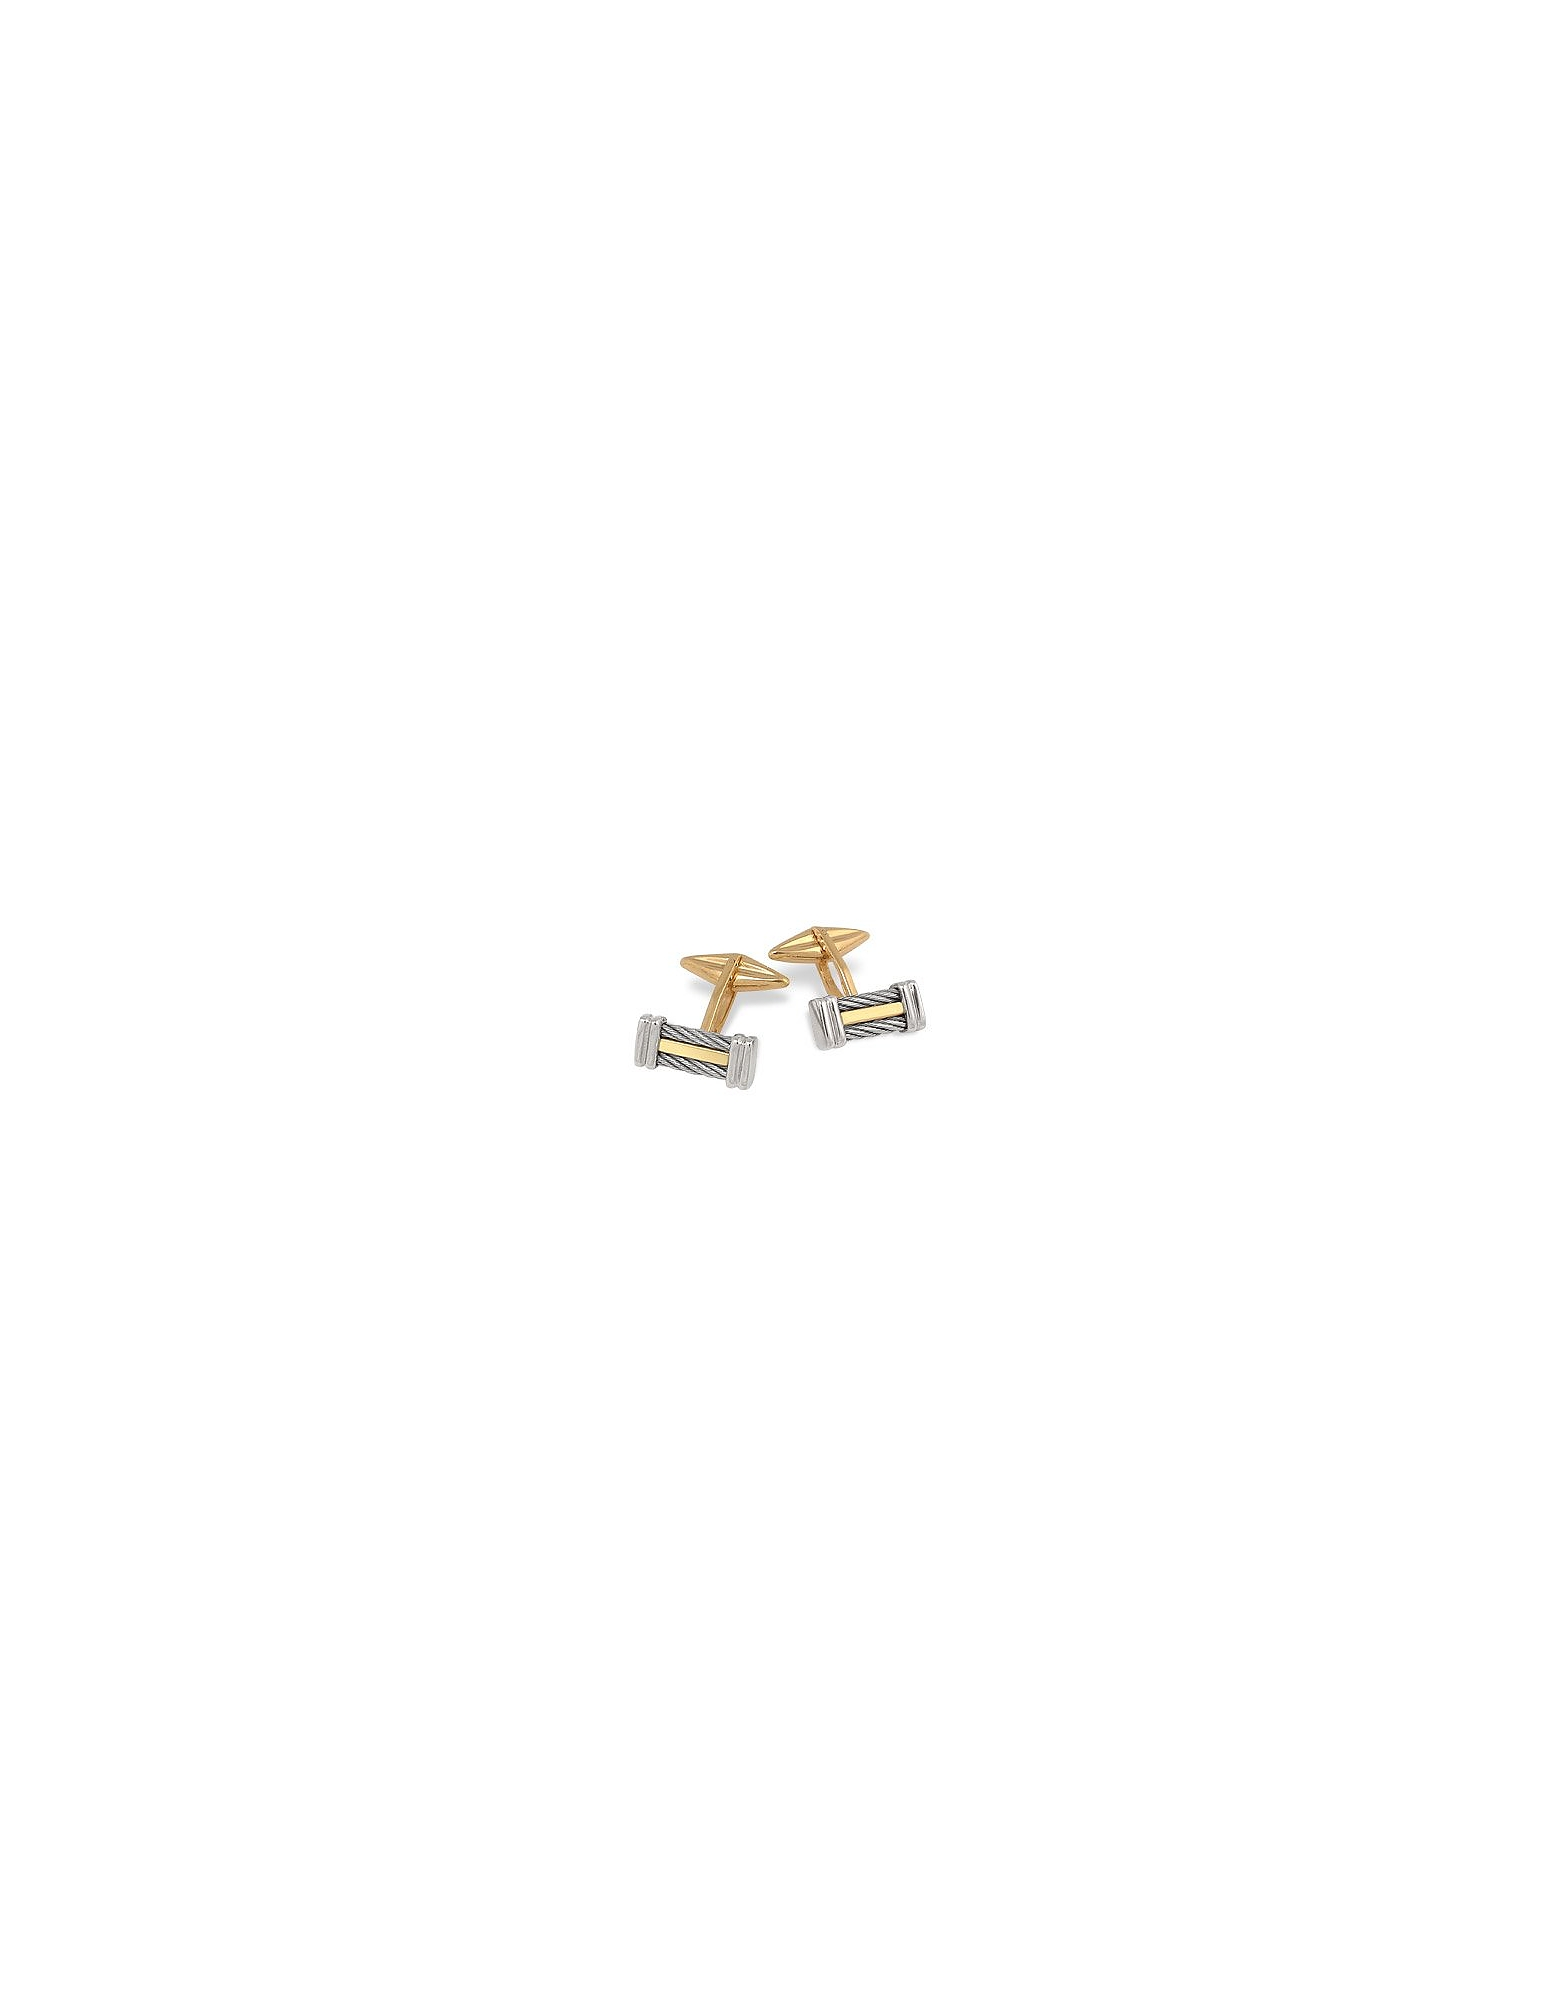 Forzieri Cufflinks, Di Fulco Line Gold and Stainless Steel Cufflinks